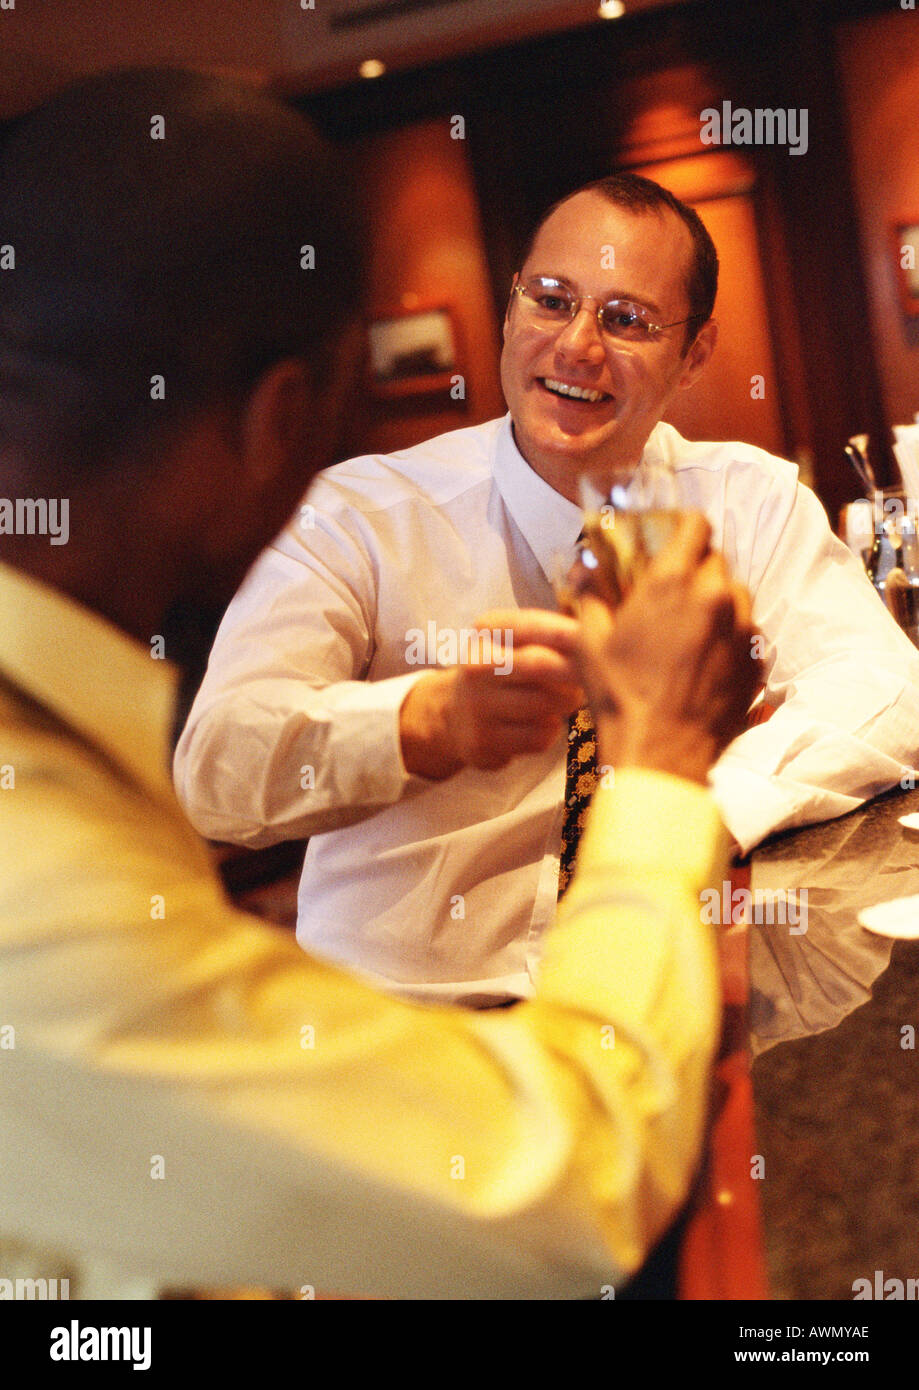 Businessmen raising glasses at bar. - Stock Image